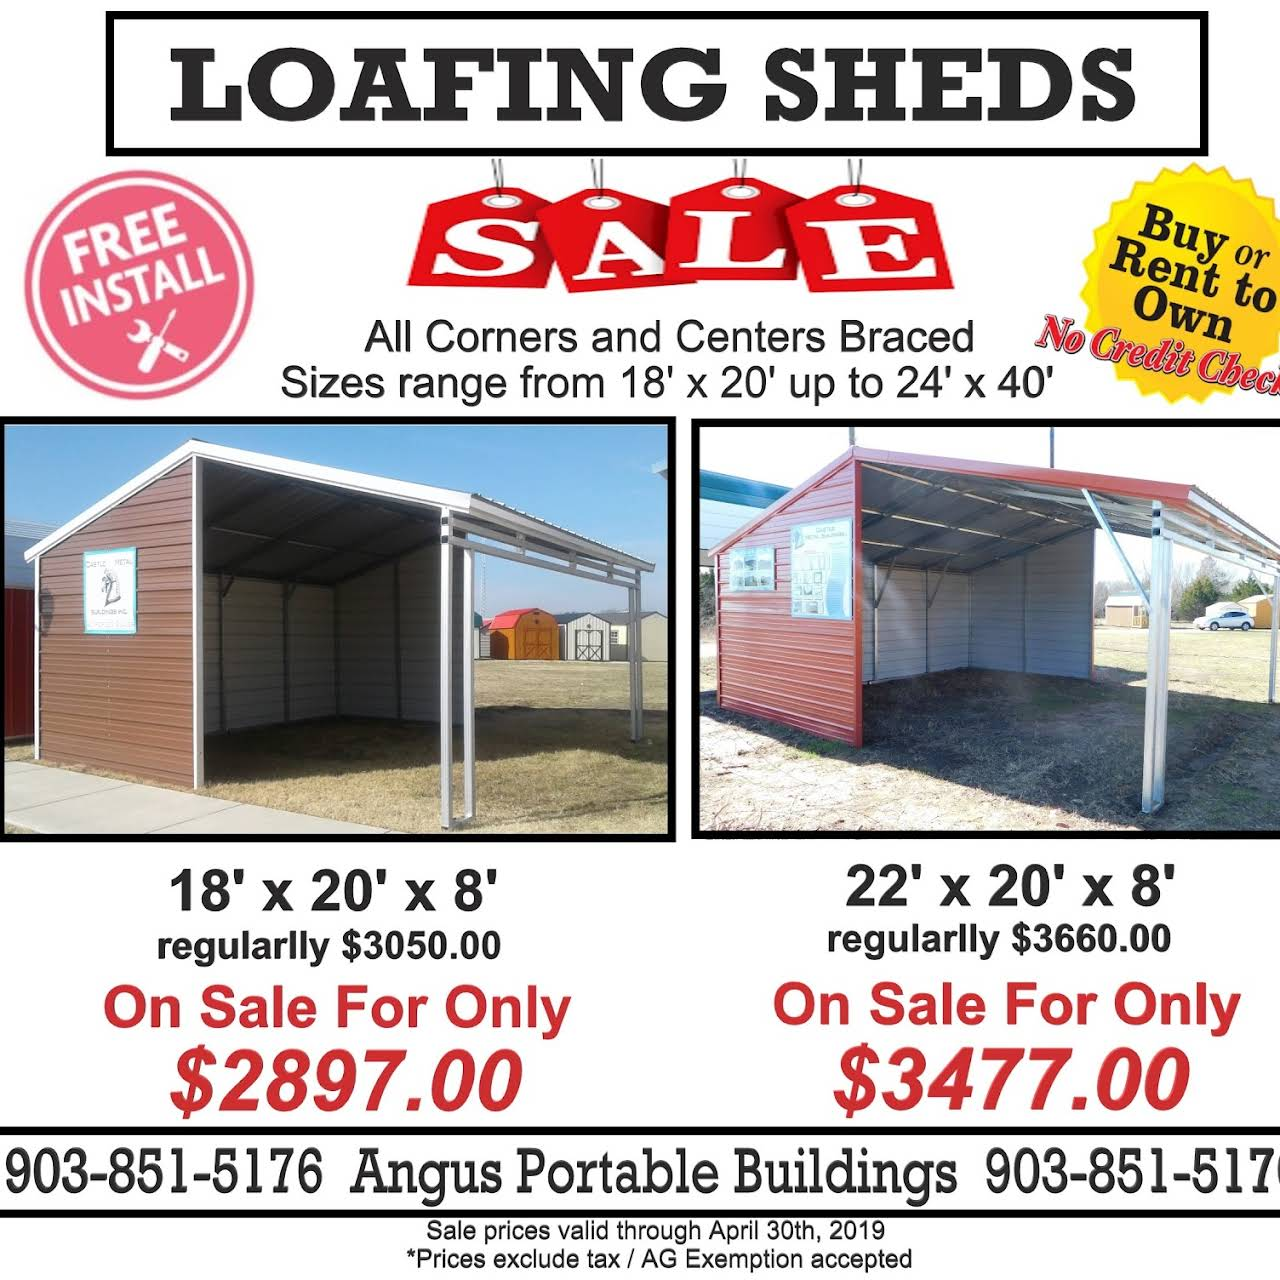 Angus Portable Buildings - Home Goods Store in Angus, Texas